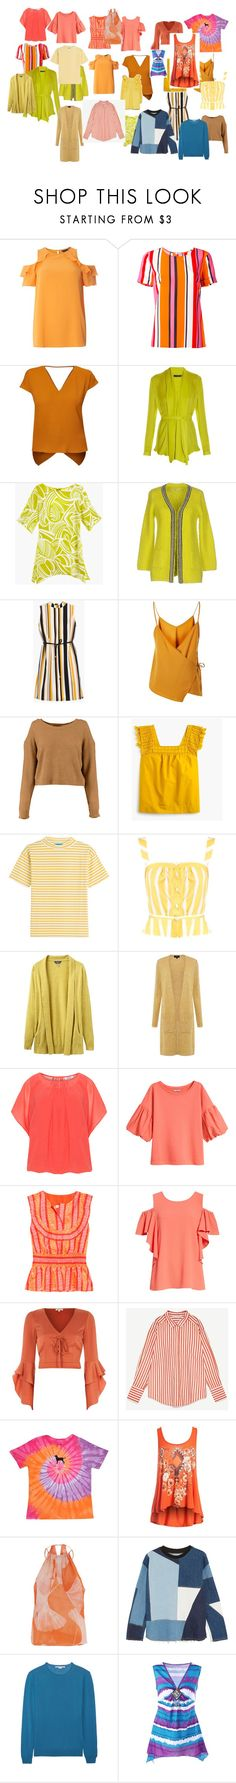 """Таня Мельничук_верха"" by vesta-svet on Polyvore featuring мода, Dorothy Perkins, P.A.R.O.S.H., WtR, Etro, Darling, Chico's, WYLDR, J.Crew и M.i.h Jeans"